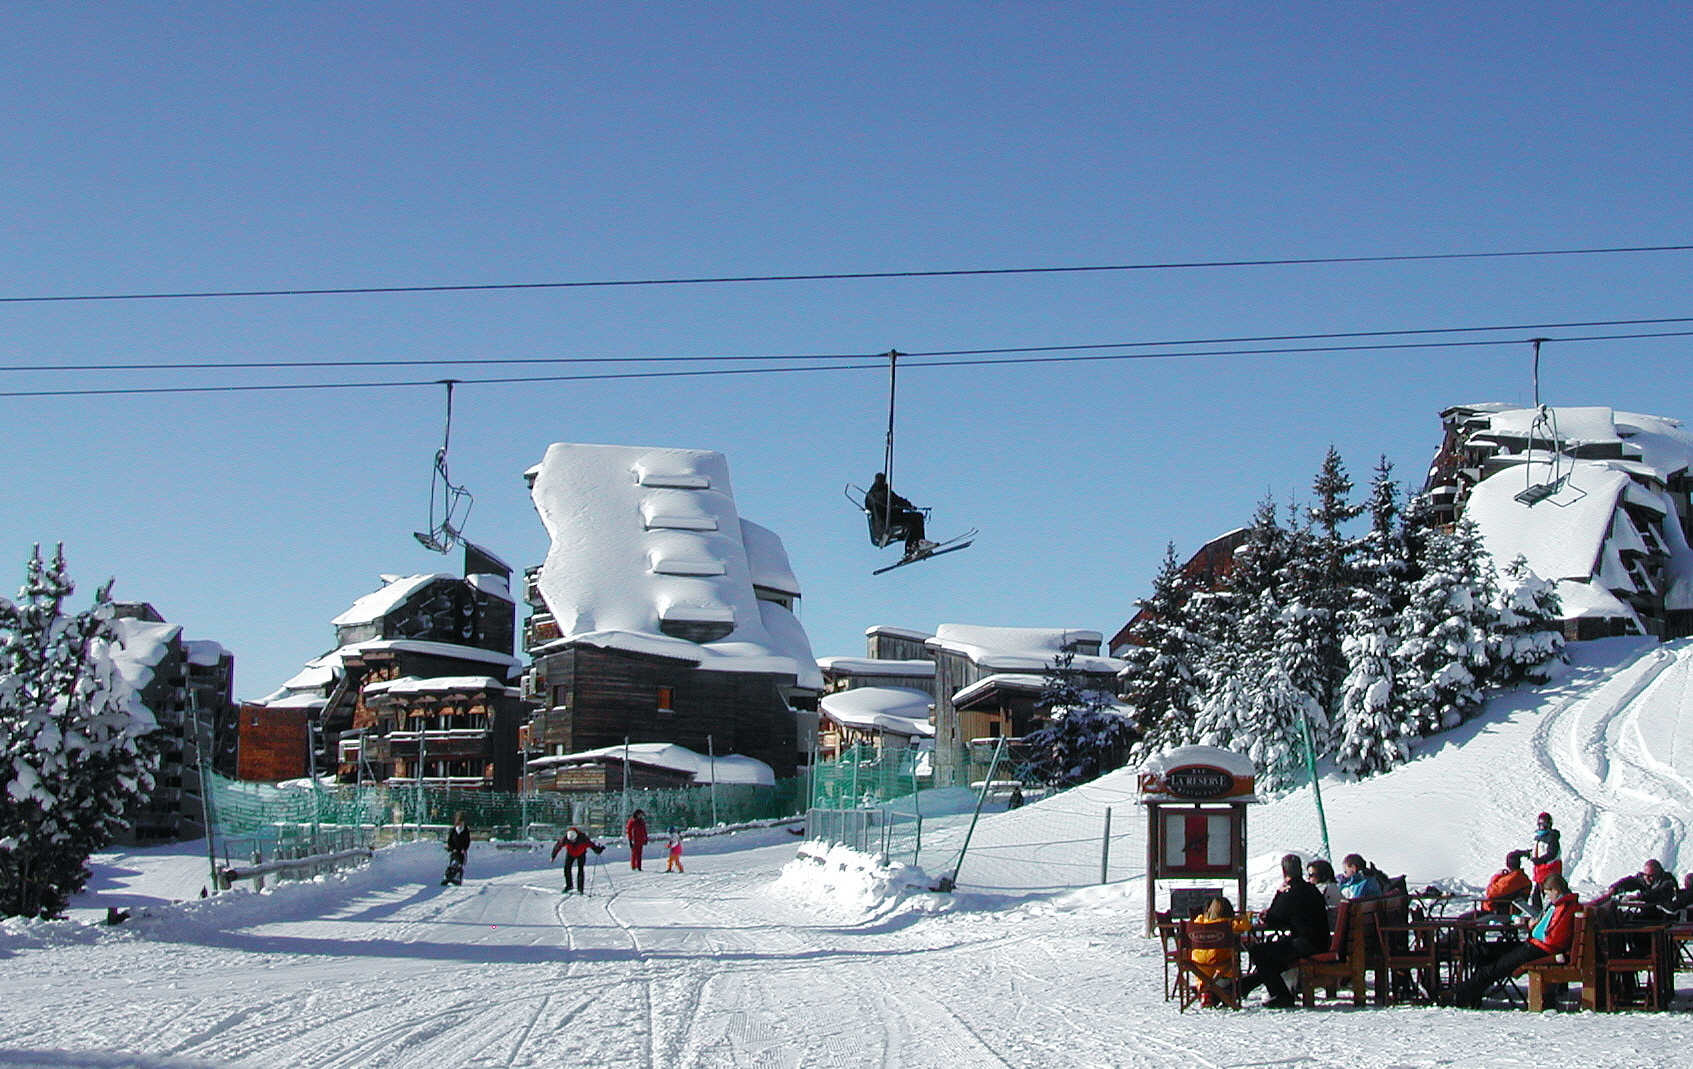 Avoriaz centre with chair lift passing over pedestrianised road